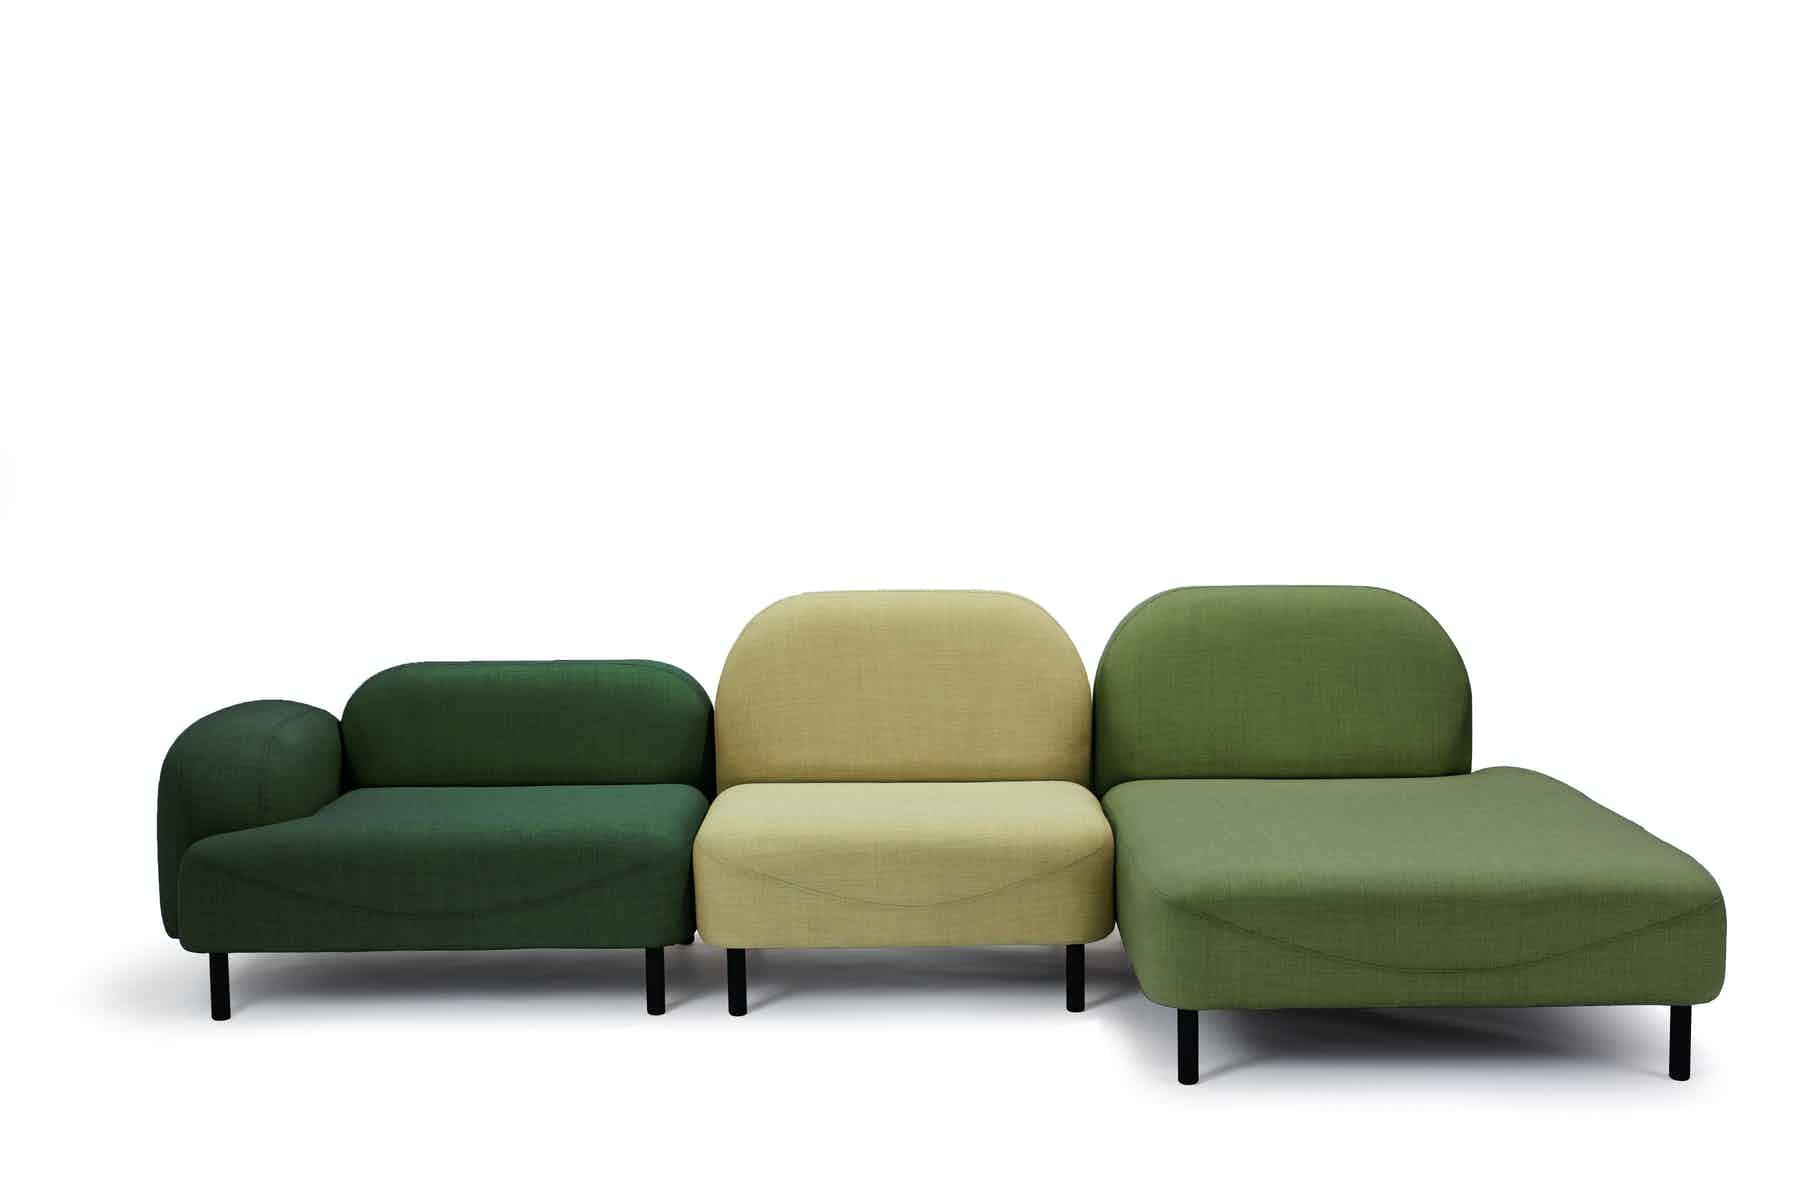 Deadgood-scafell-modular-sofa-greens-haute-living